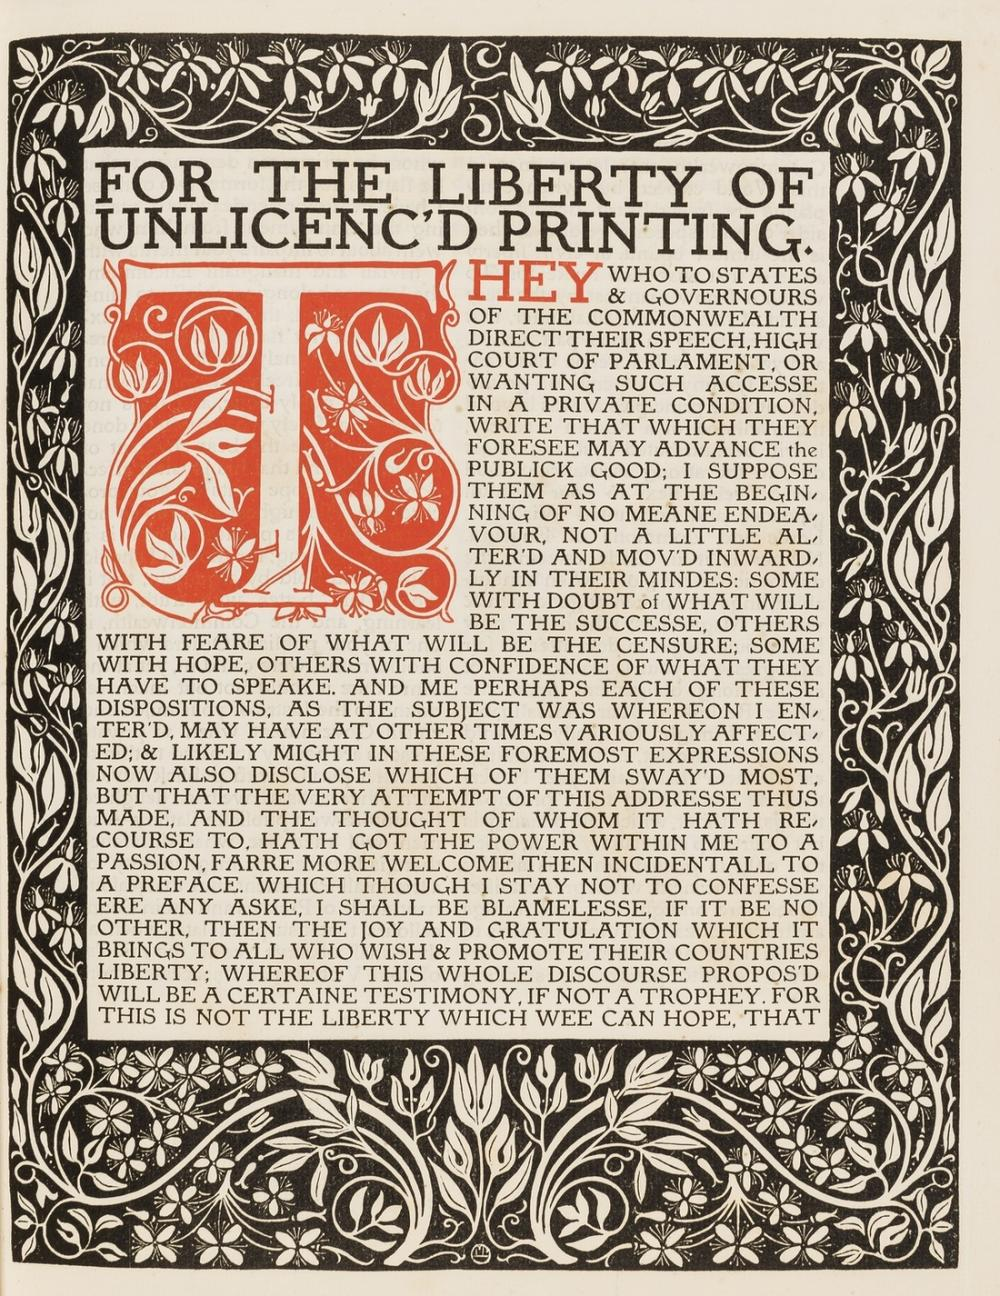 Eragny Press.- Milton (John) Areopagitica: A Speech...for the Liberty of Unlicenc'd Printing, to the Parliament of England, second issue, one of 160 copies, 1904.